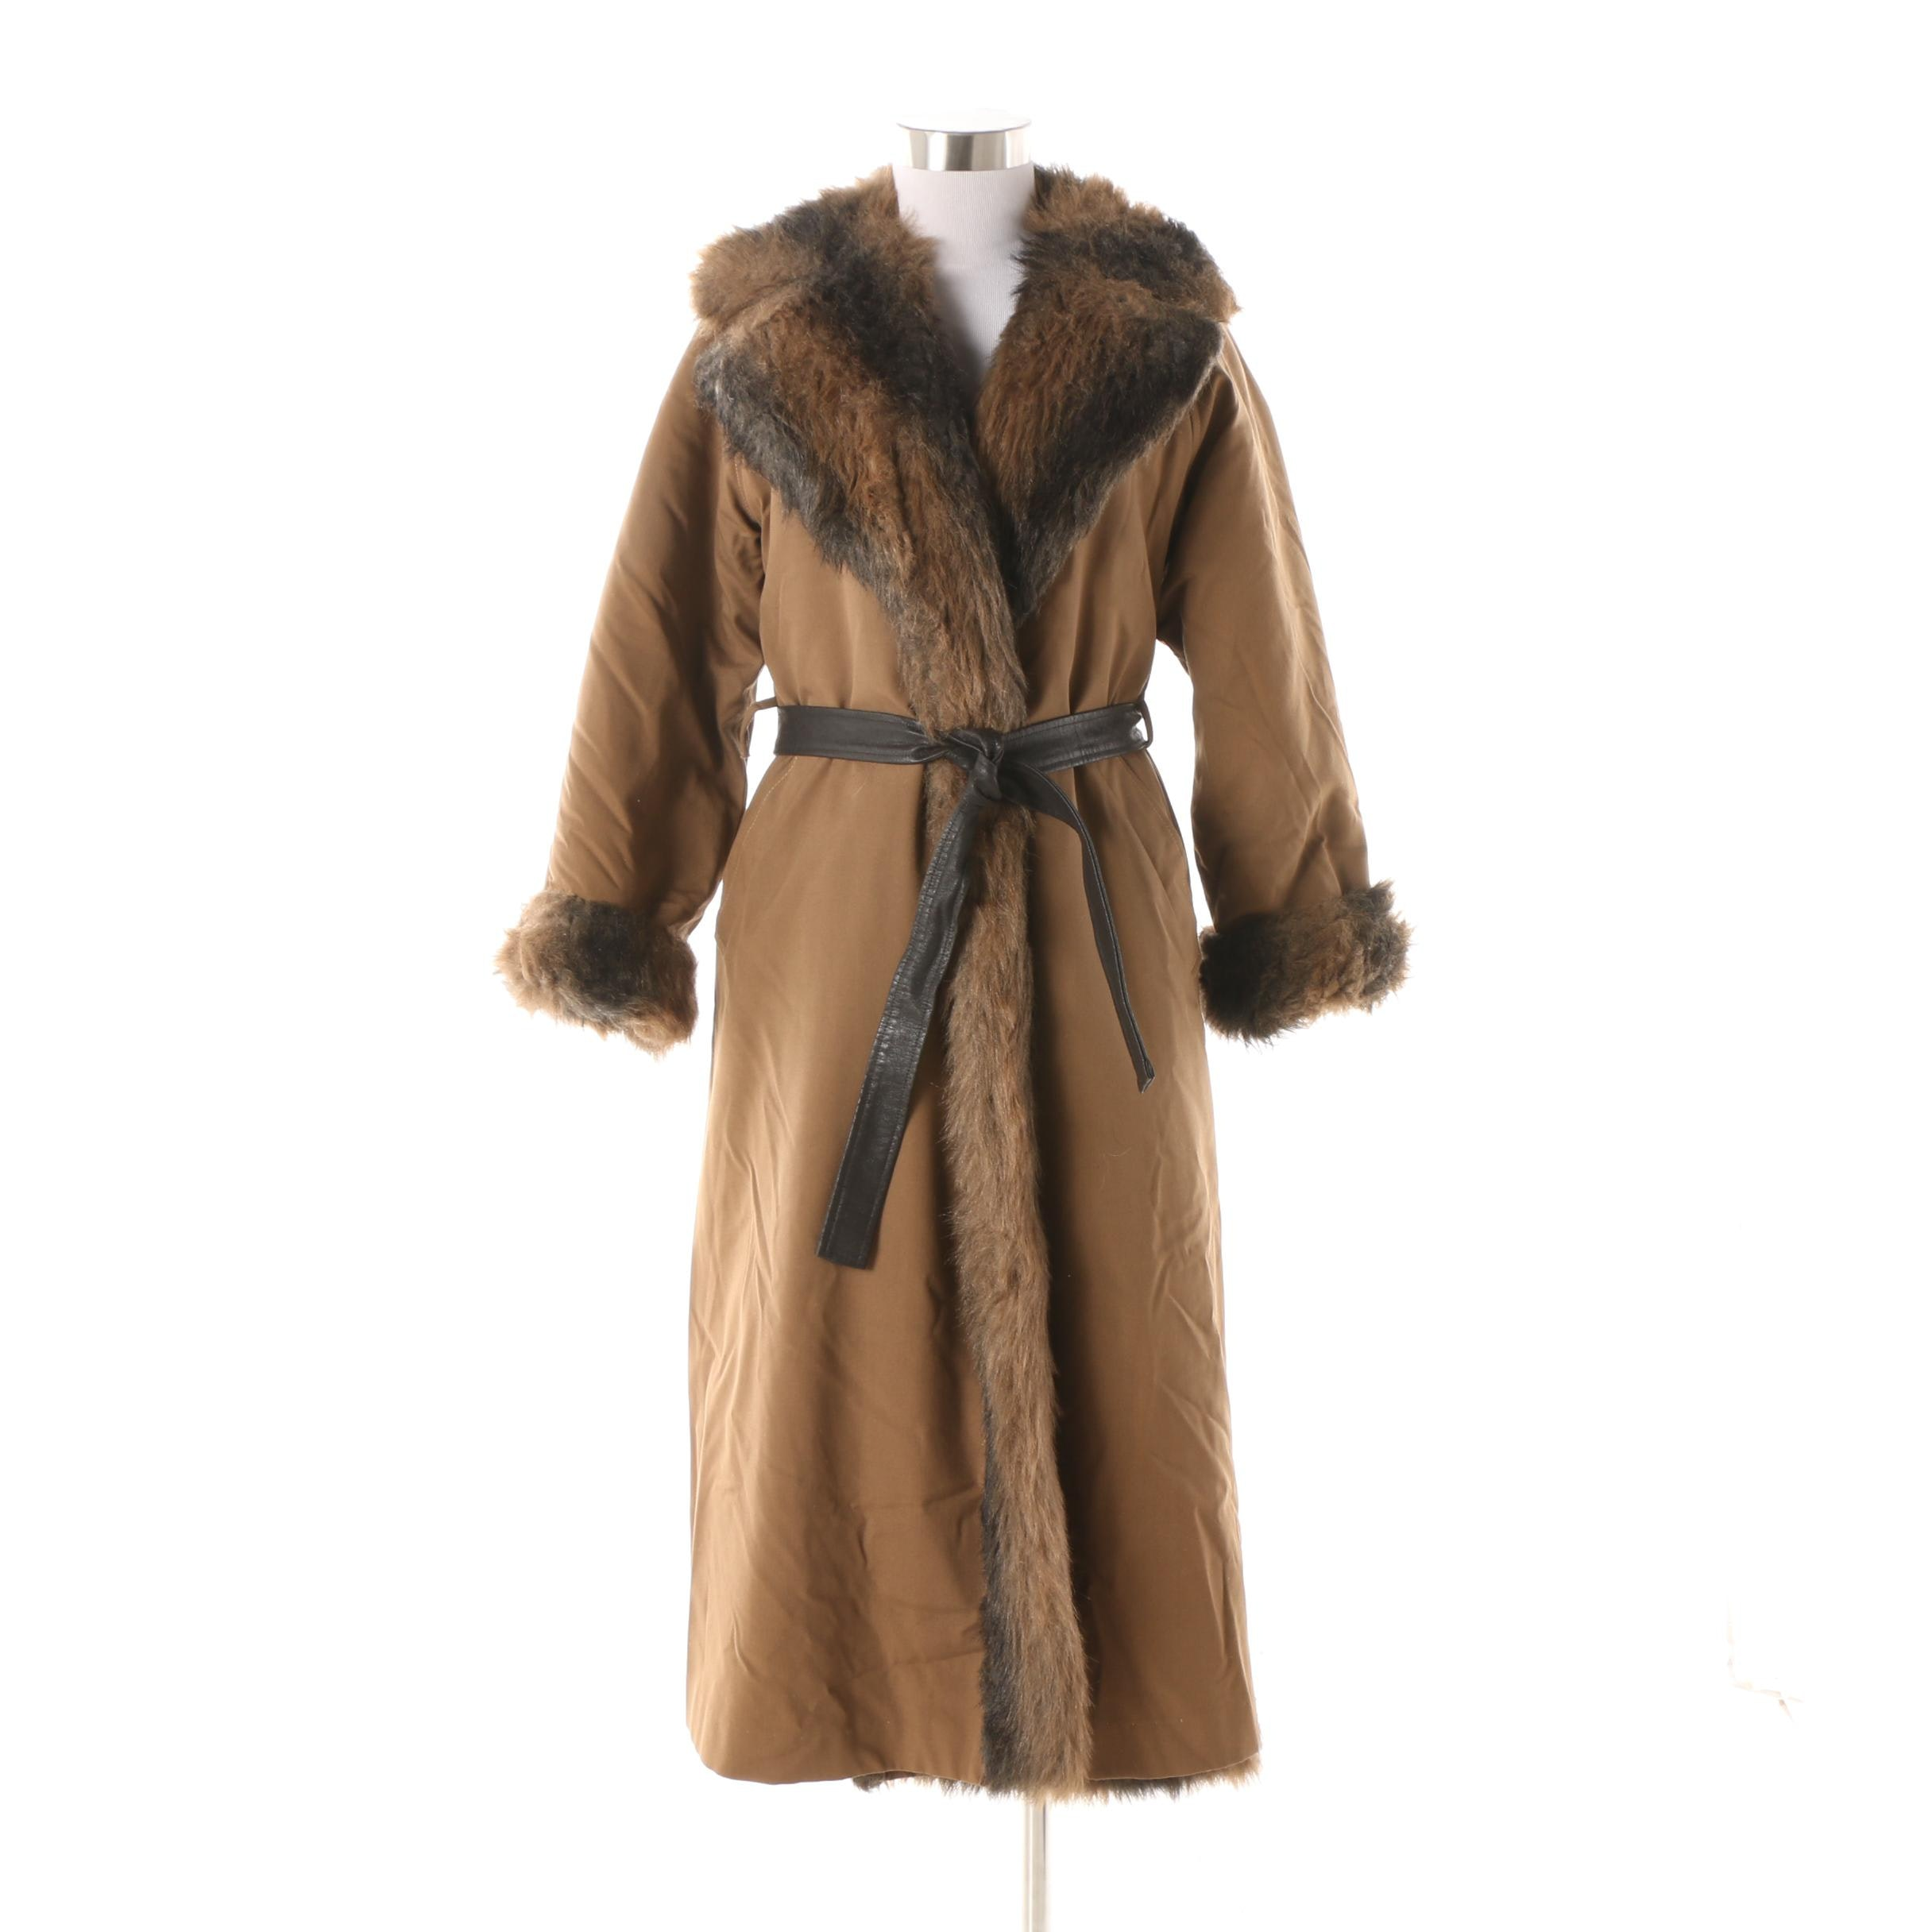 1970s Bonnie Cashin Canvas Wrap Coat with Faux Fur Lining and Leather Belt